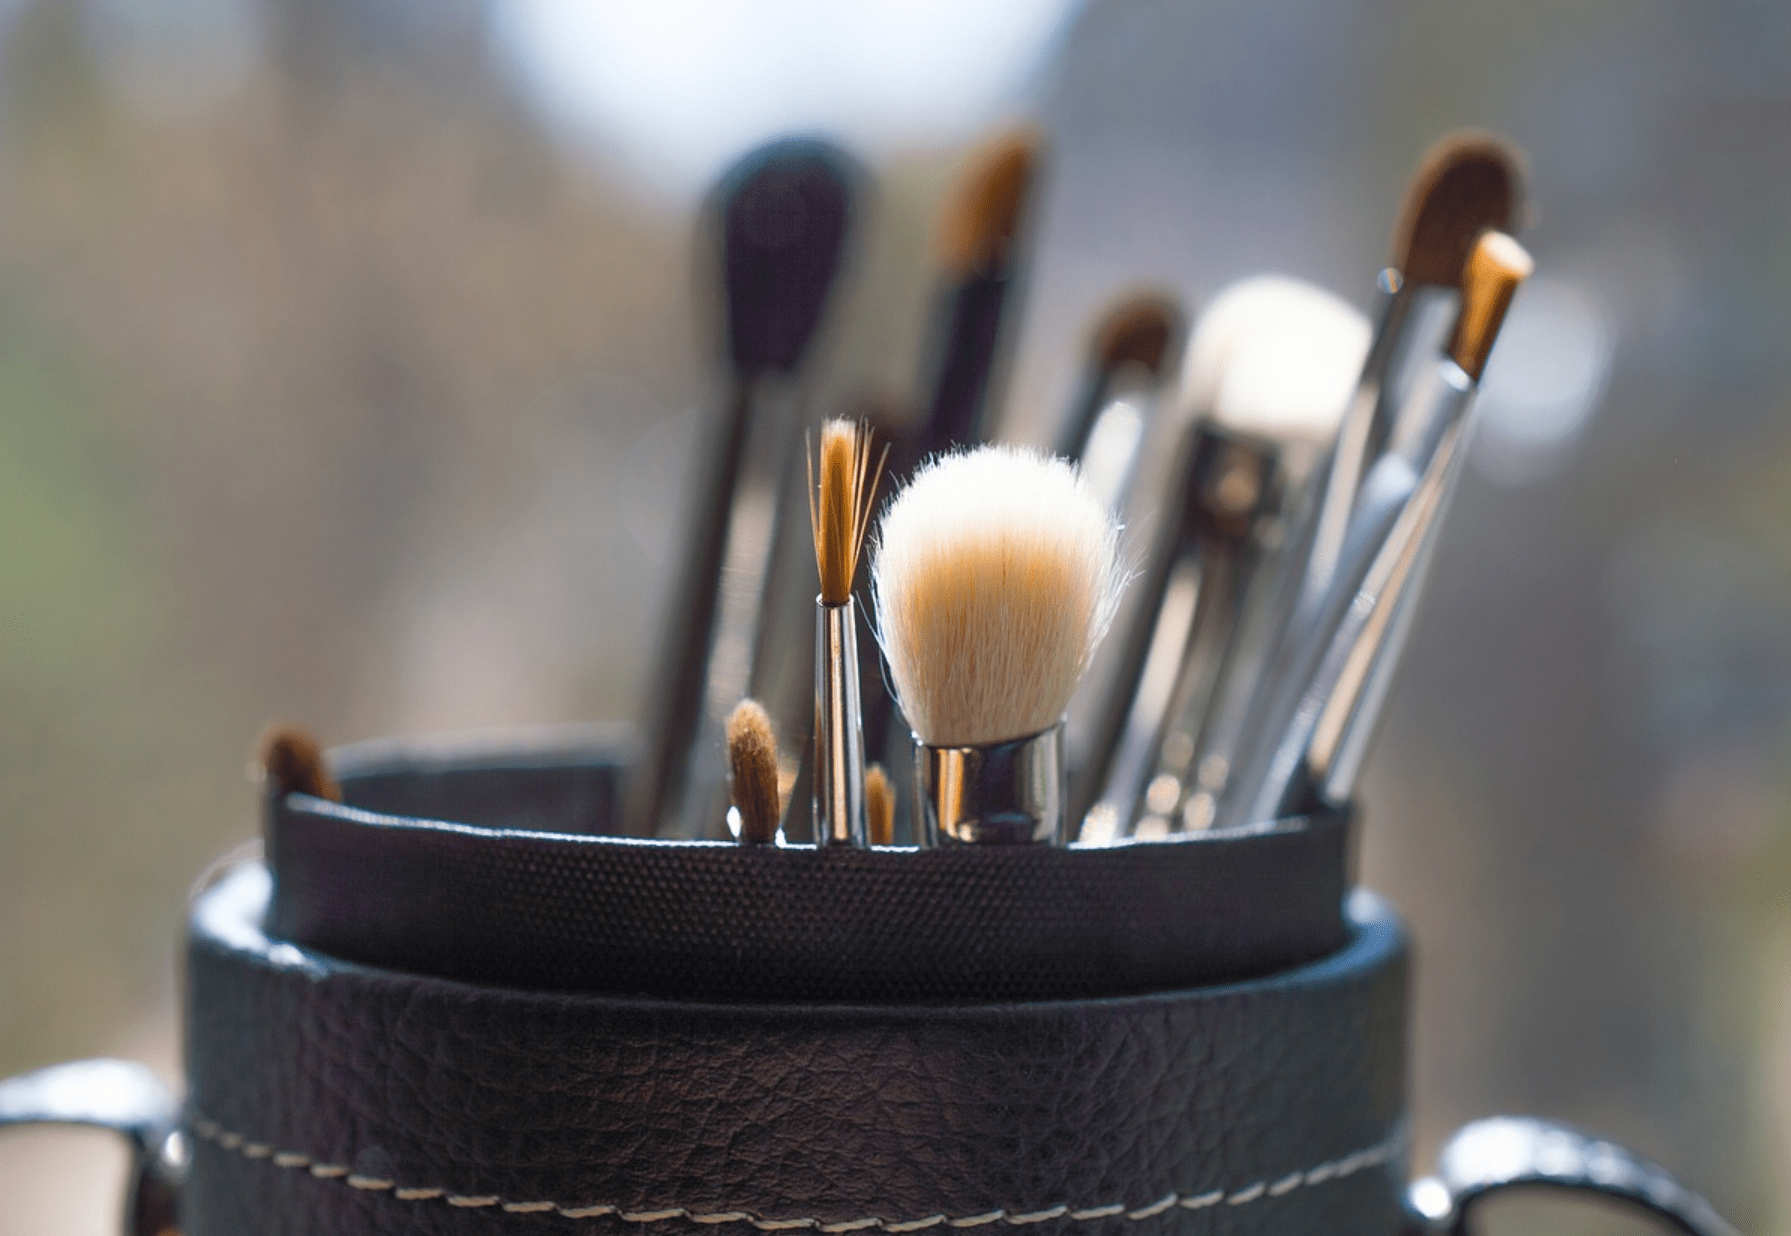 Clean your make-up brushes regularly to prevent build up of germs.